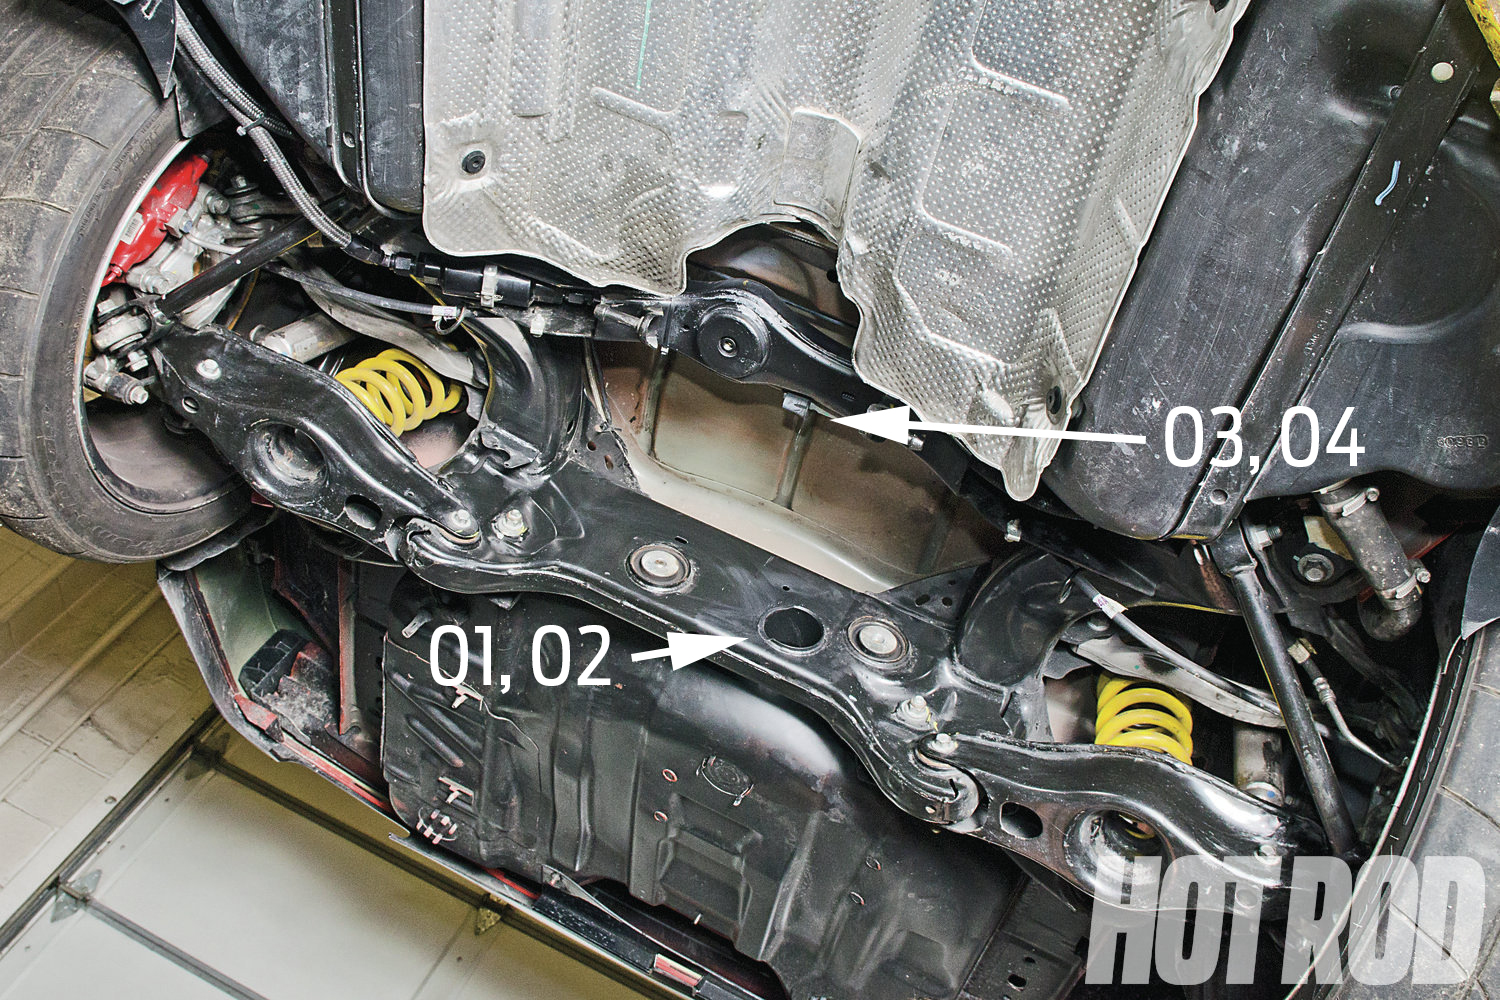 To get the Pro60-IRS to fit in the car, the flanged through-hole's lip on the IRS's rear cradle crossover was trimmed (details, photos 01–02). On the forward horizontal crossover, the double-walled member was messaged near the forward housing mount (photos 03–04).